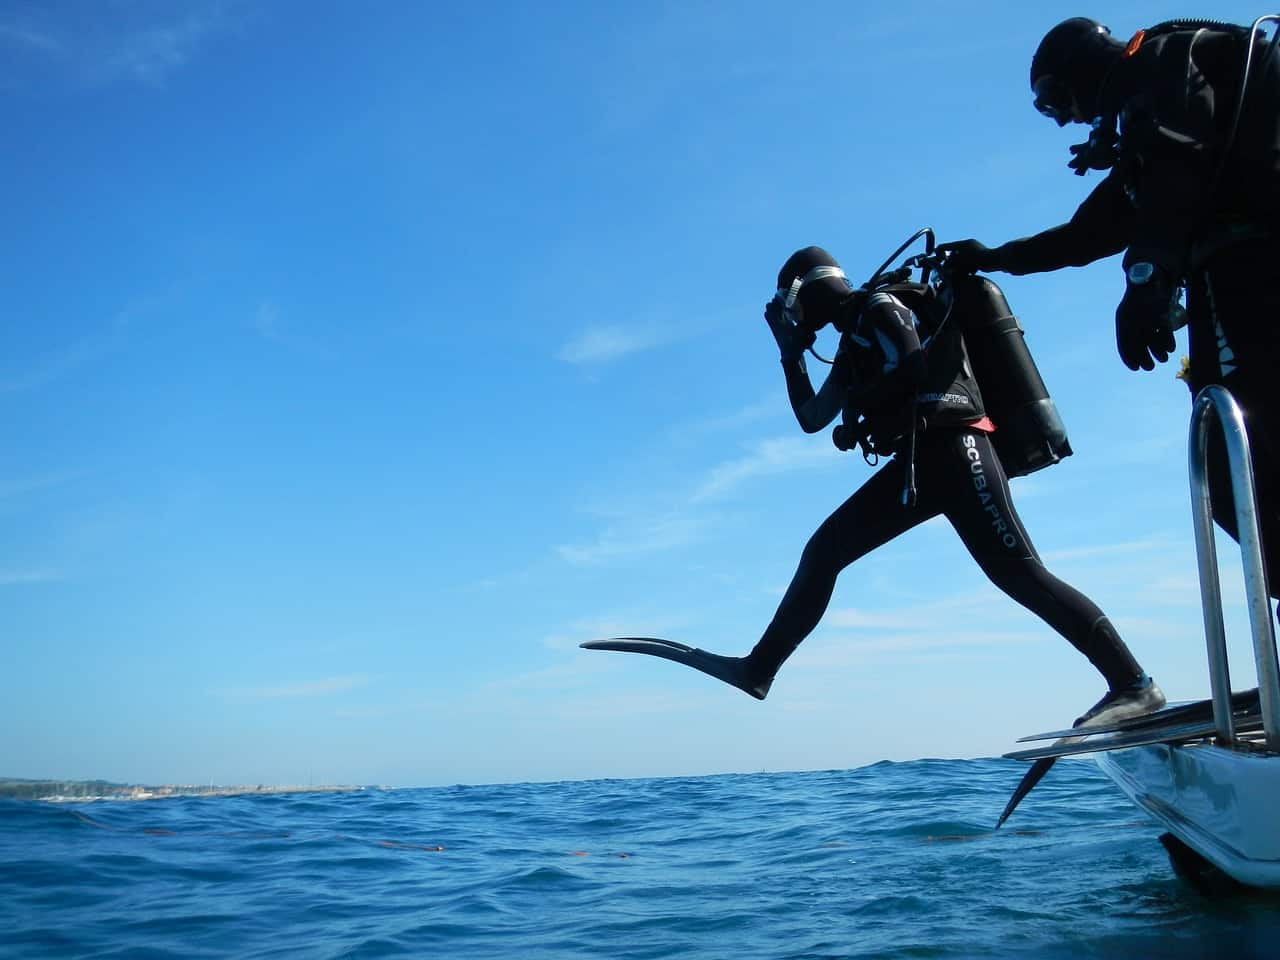 Person wearing a diving gear about to dive